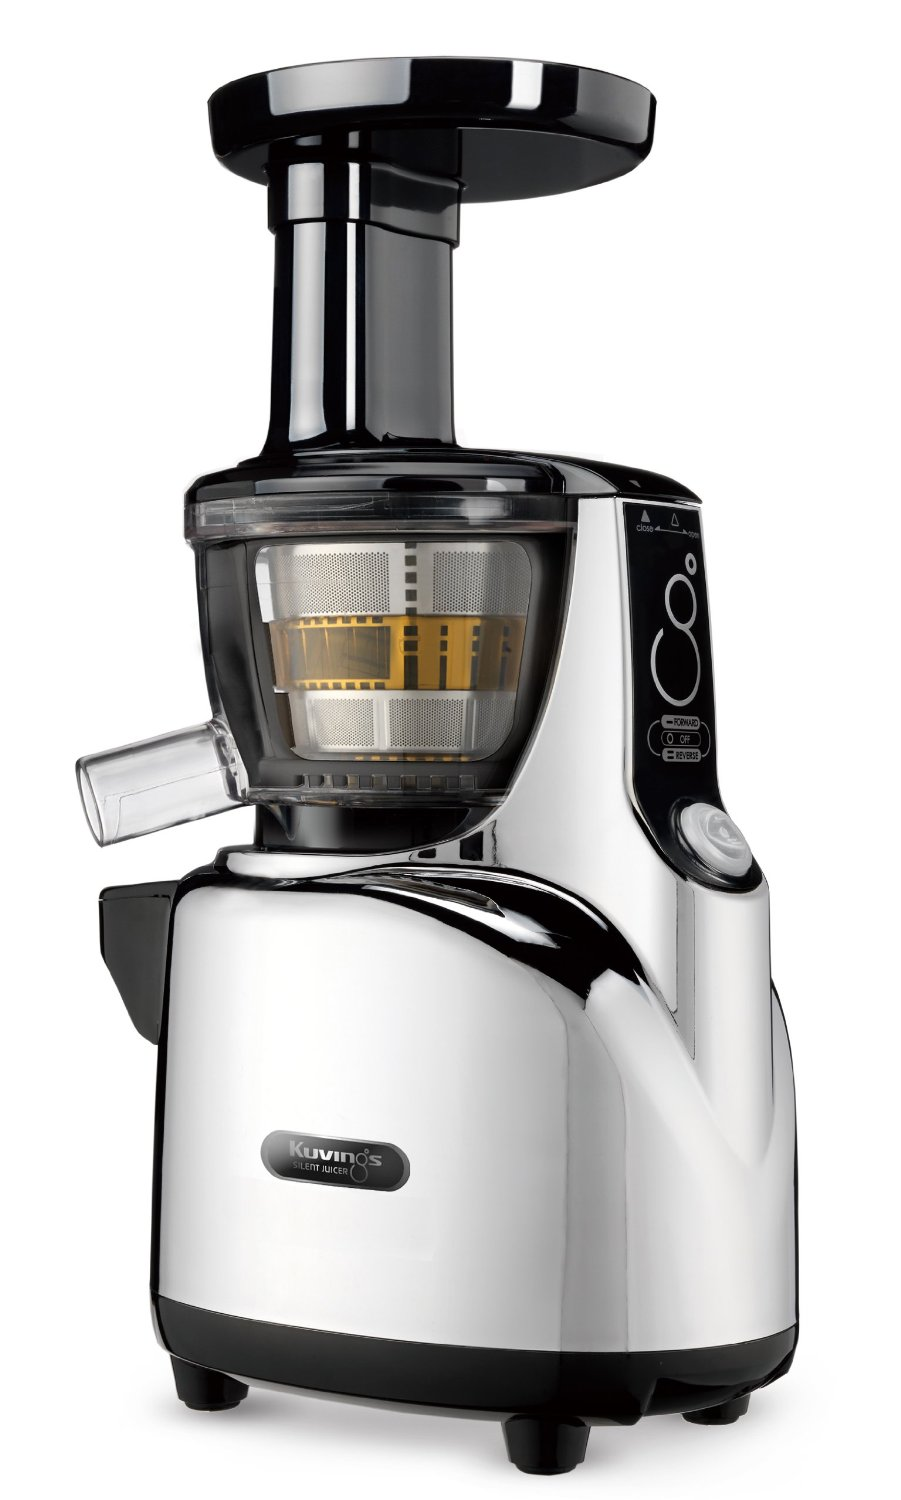 Best Slow Masticating Juicer 2018 : 5 Best Kuvings Juicer Reviews UPDATED: 2018 The Home Savant